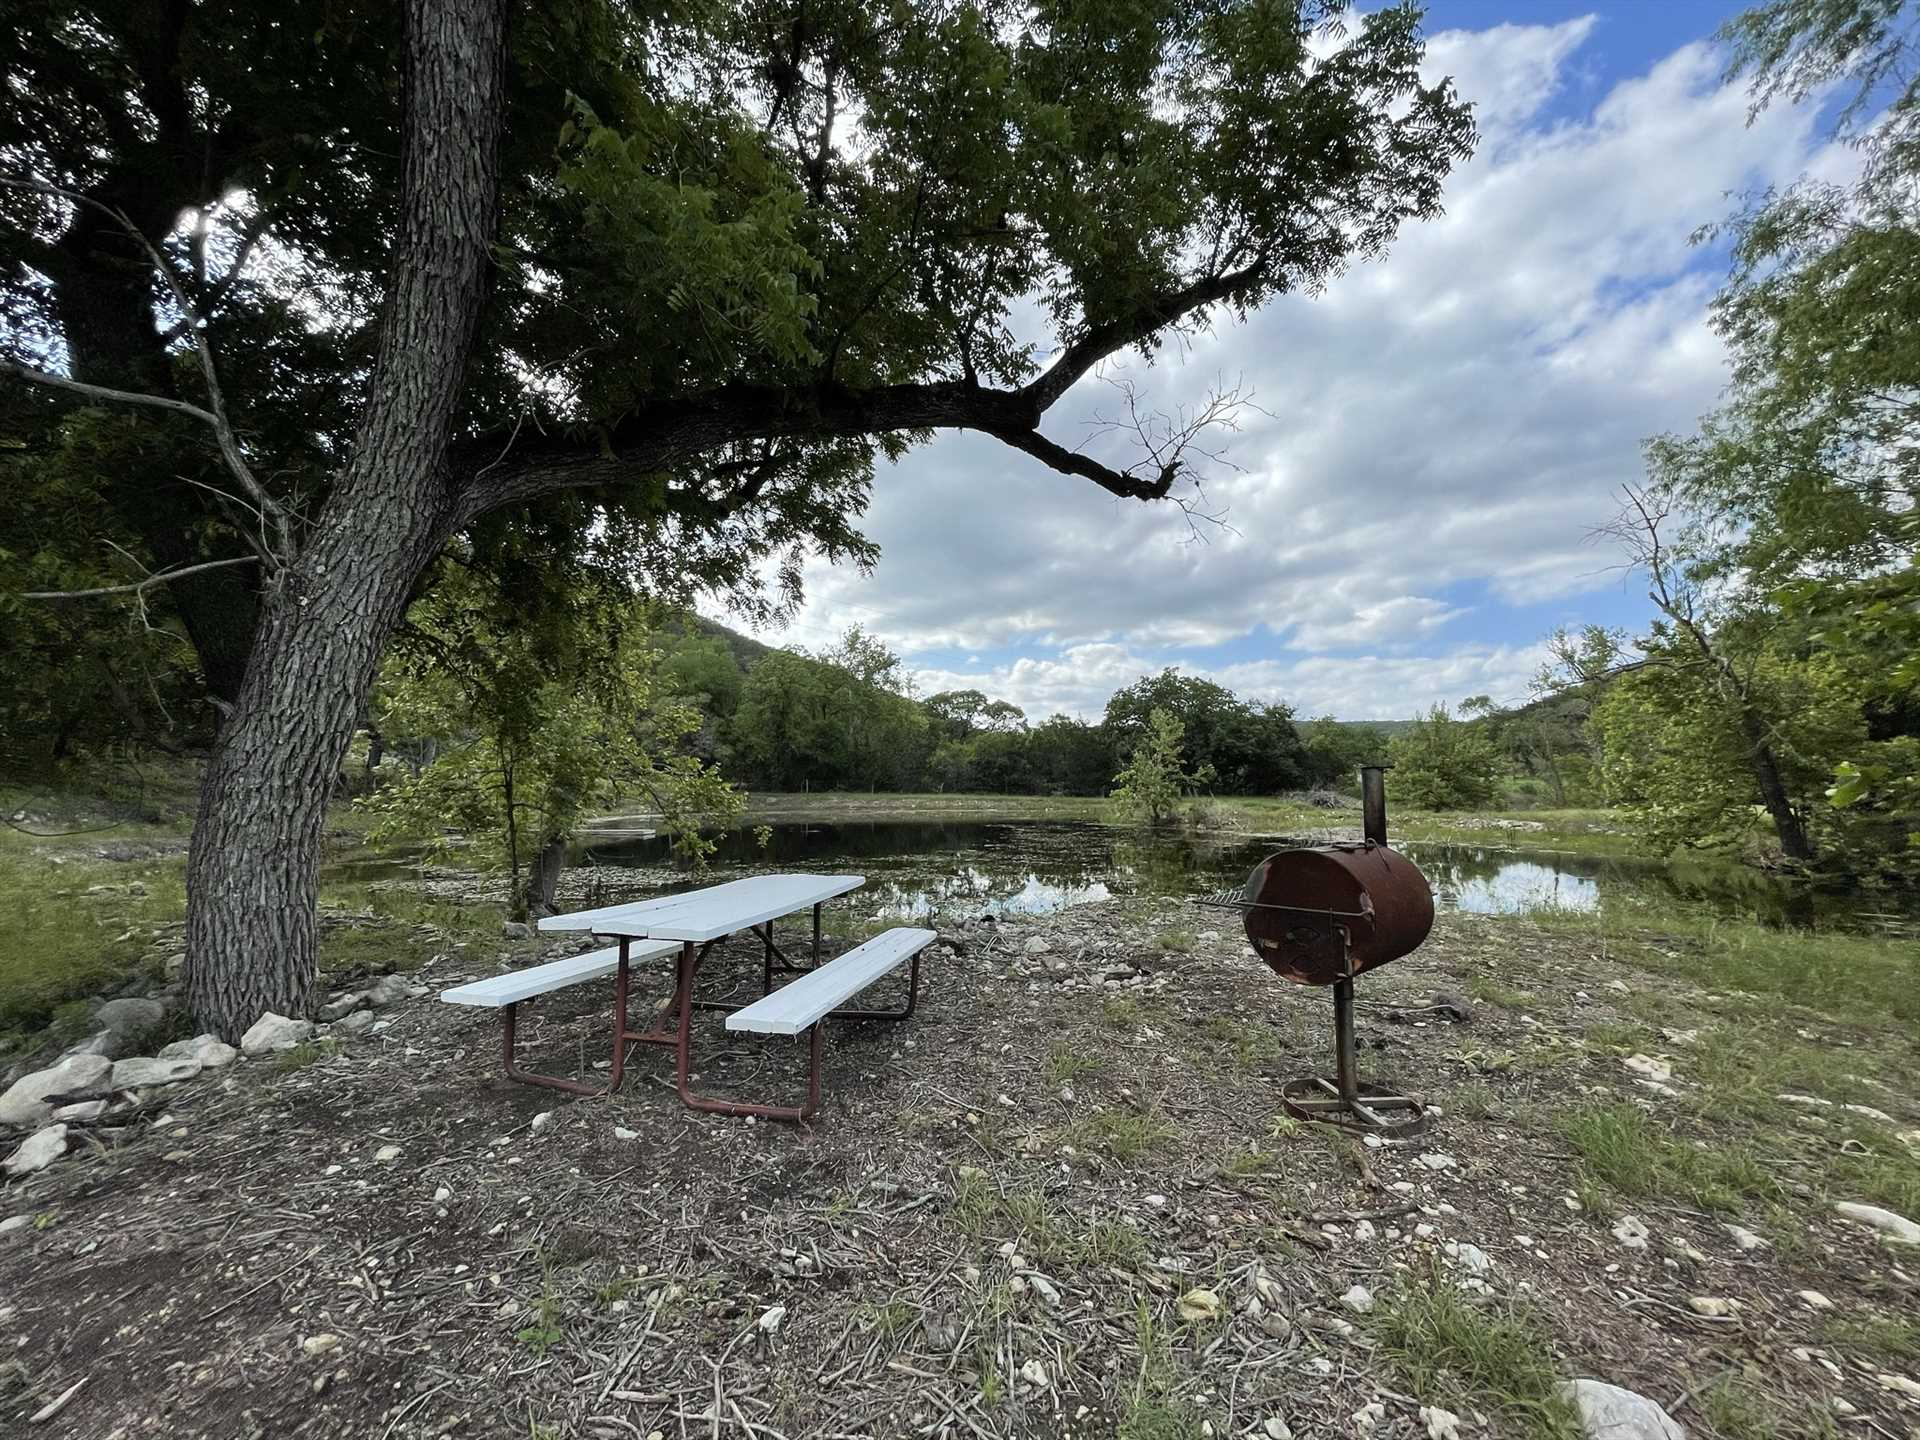 Take in a fresh-air picnic on the shore of your private pond.